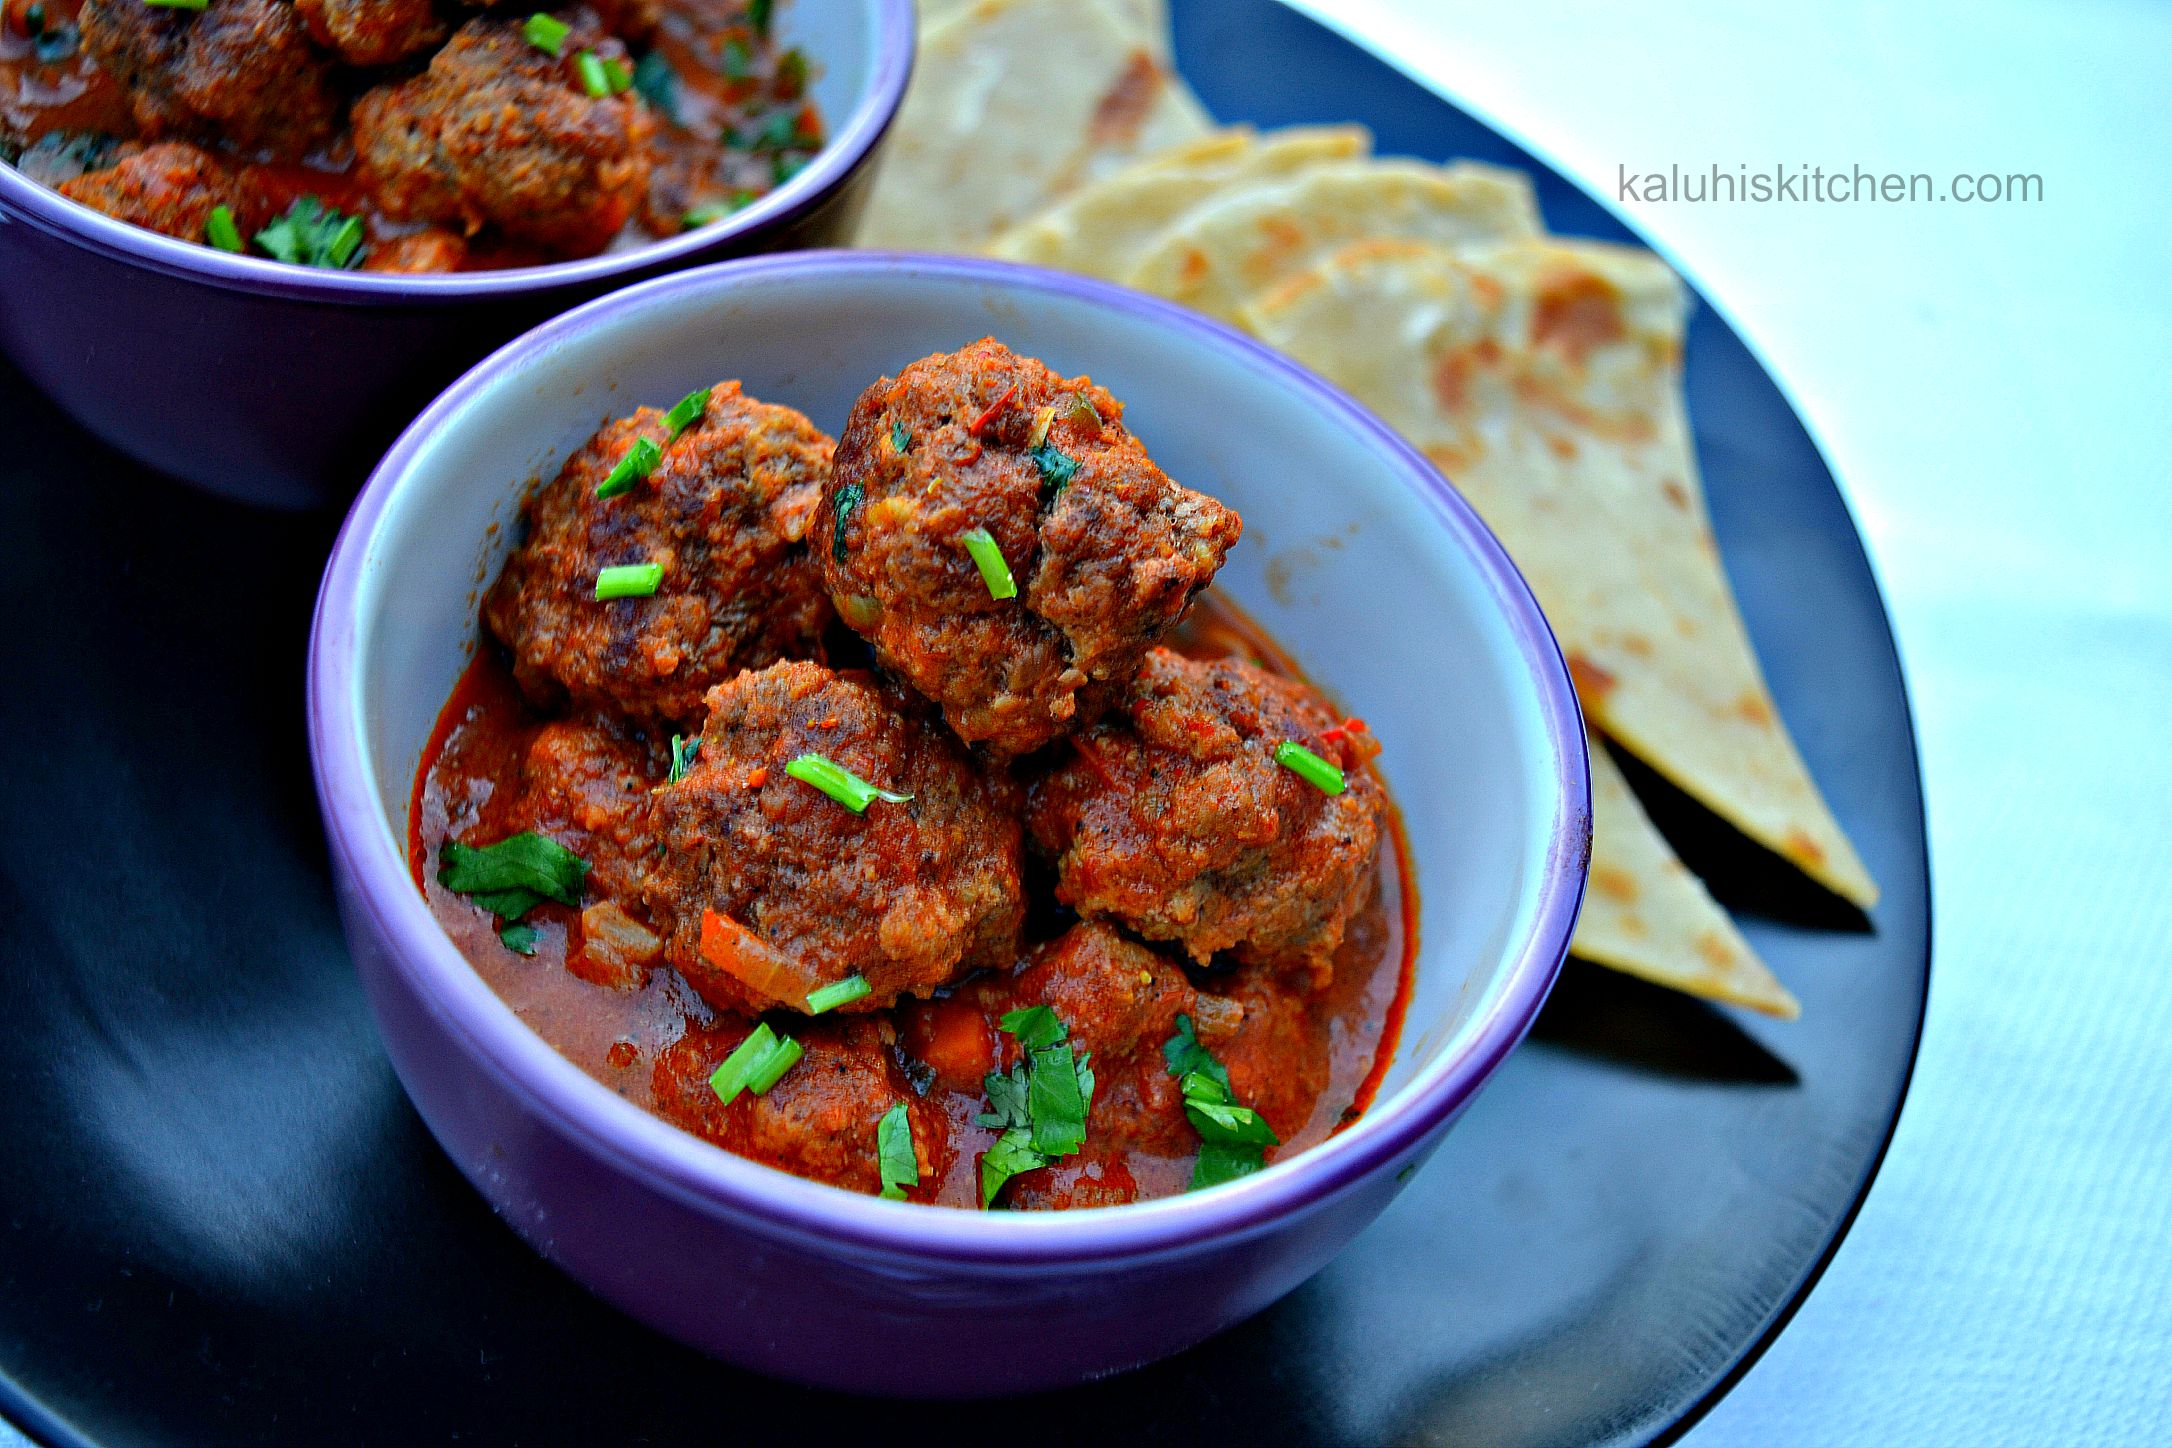 kenyan food_kenyan food bloggers_best kenyan food blog kaluhiskitchen.com_meatball tikka masala